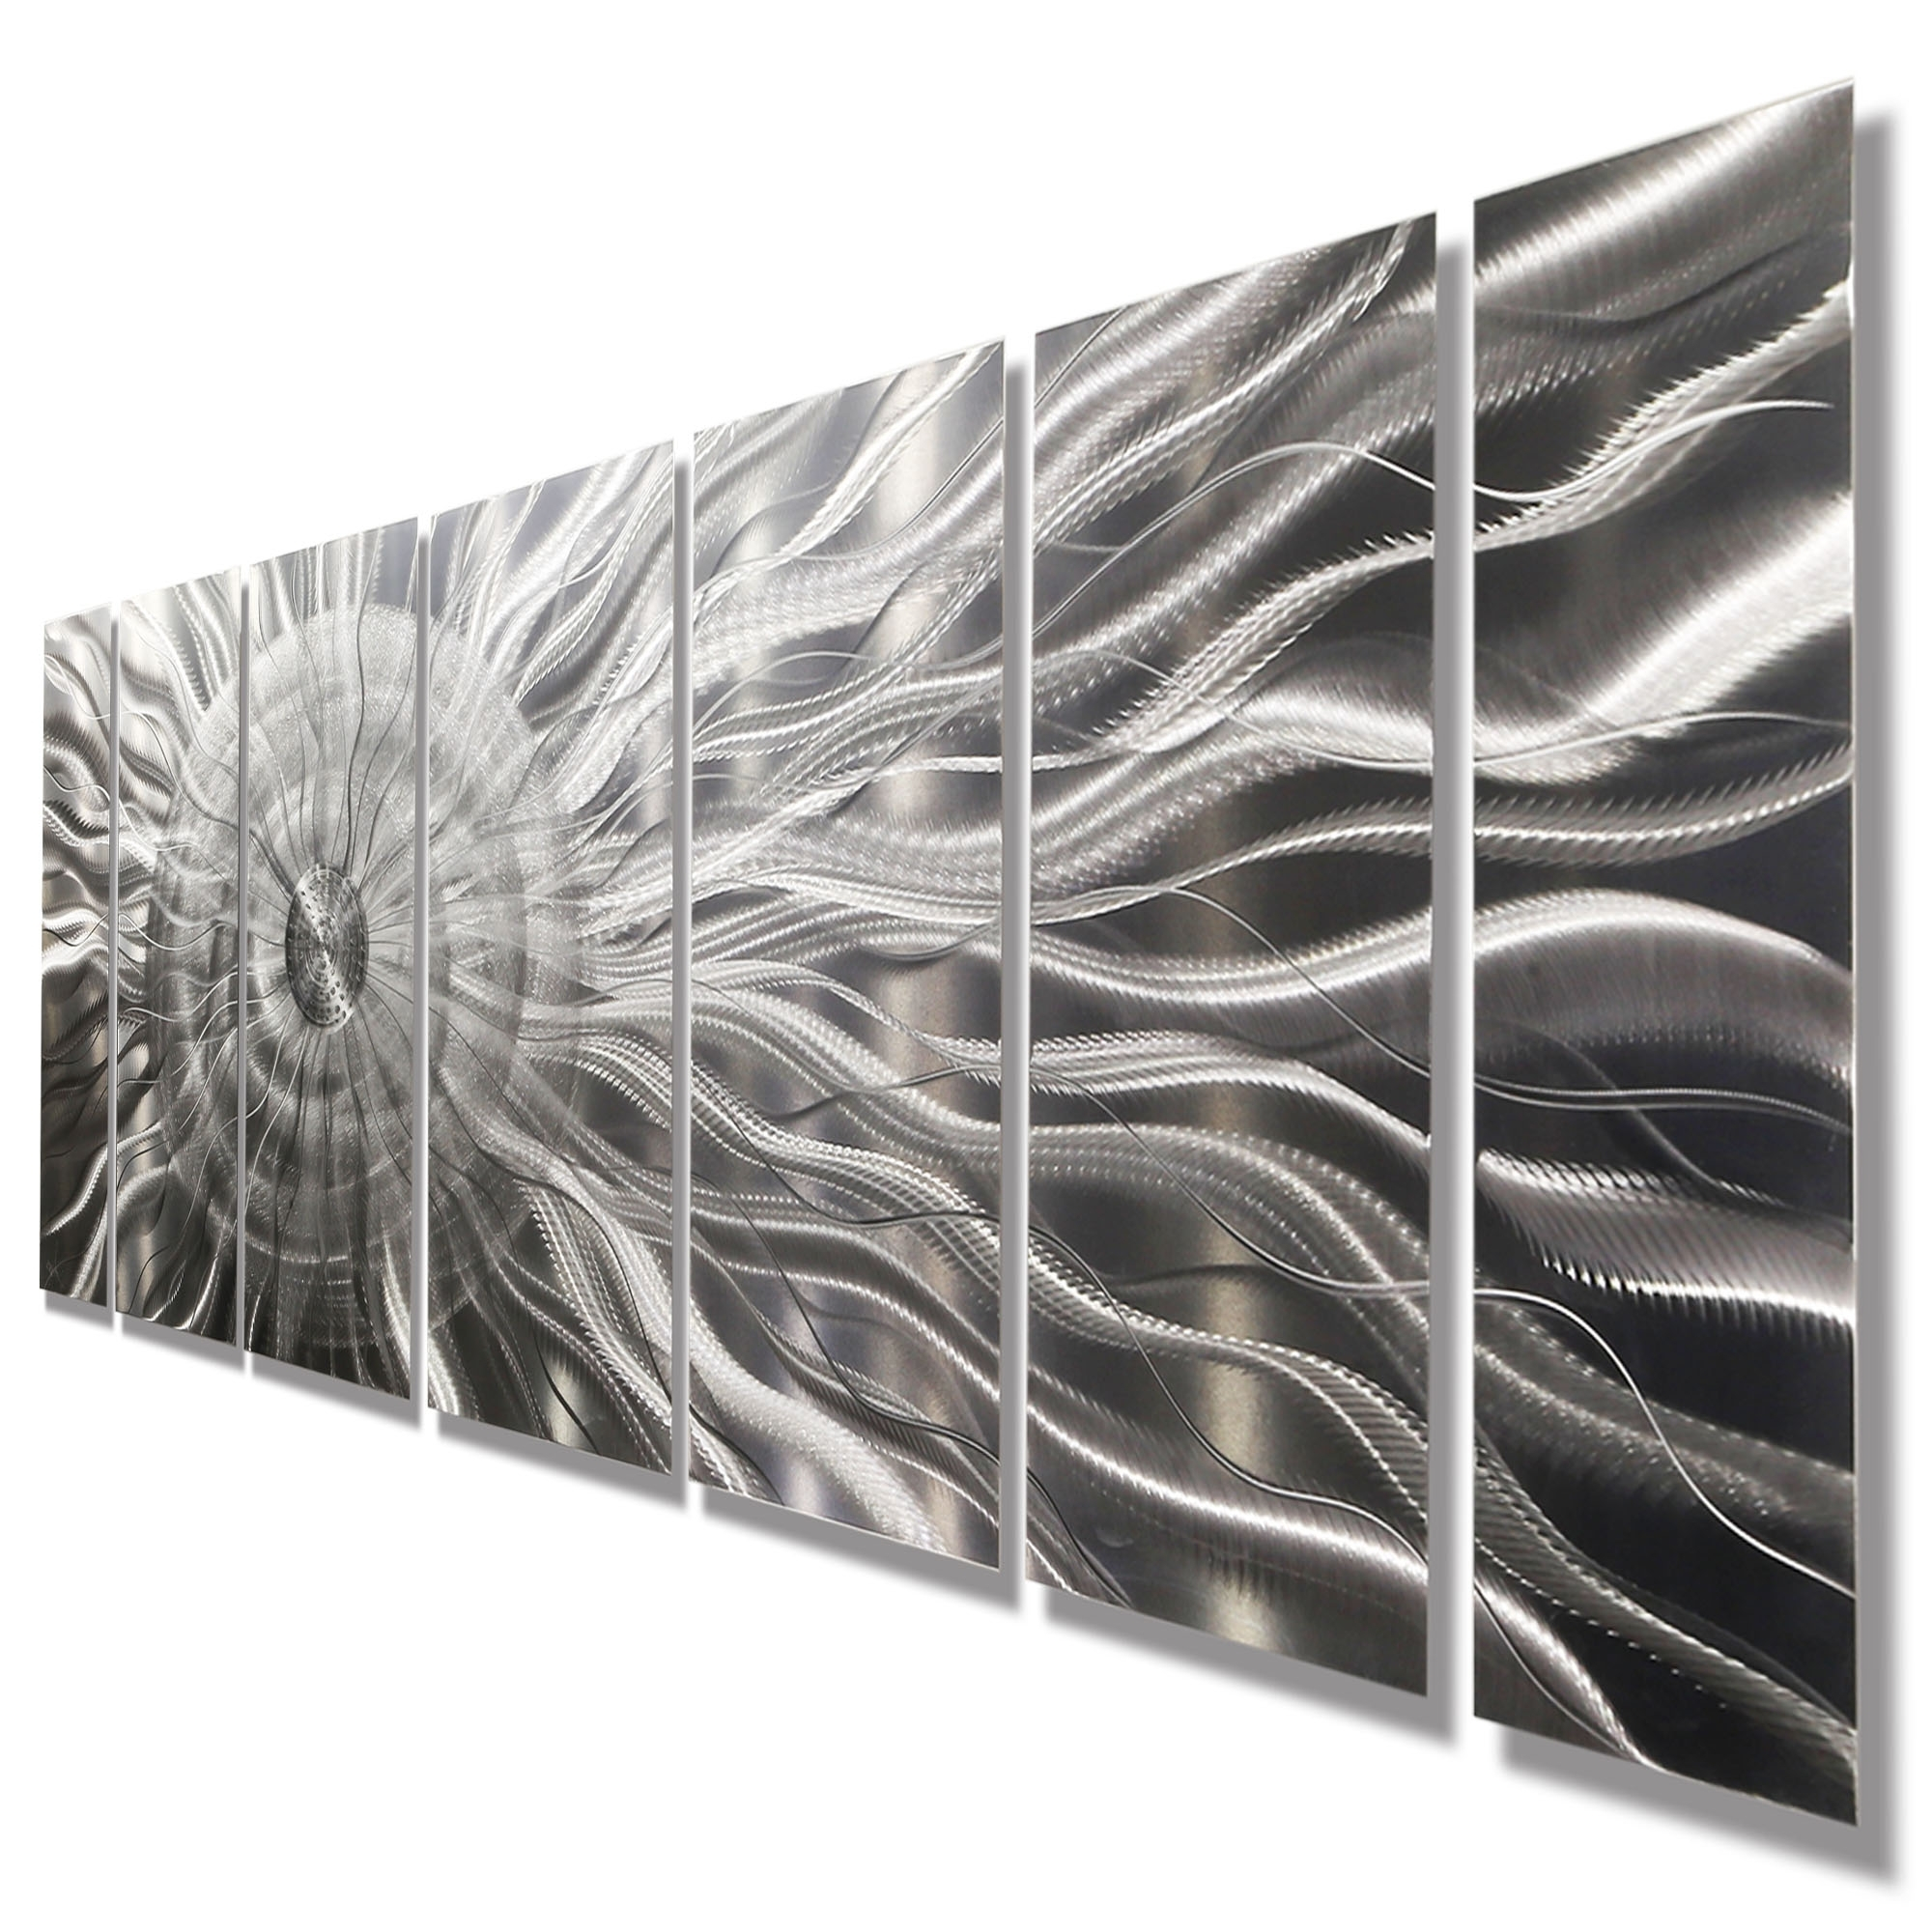 Photon Xl – Extra Large Modern Abstract Silver Corporate Metal Inside Latest 3d Wall Art Etsy (View 7 of 15)